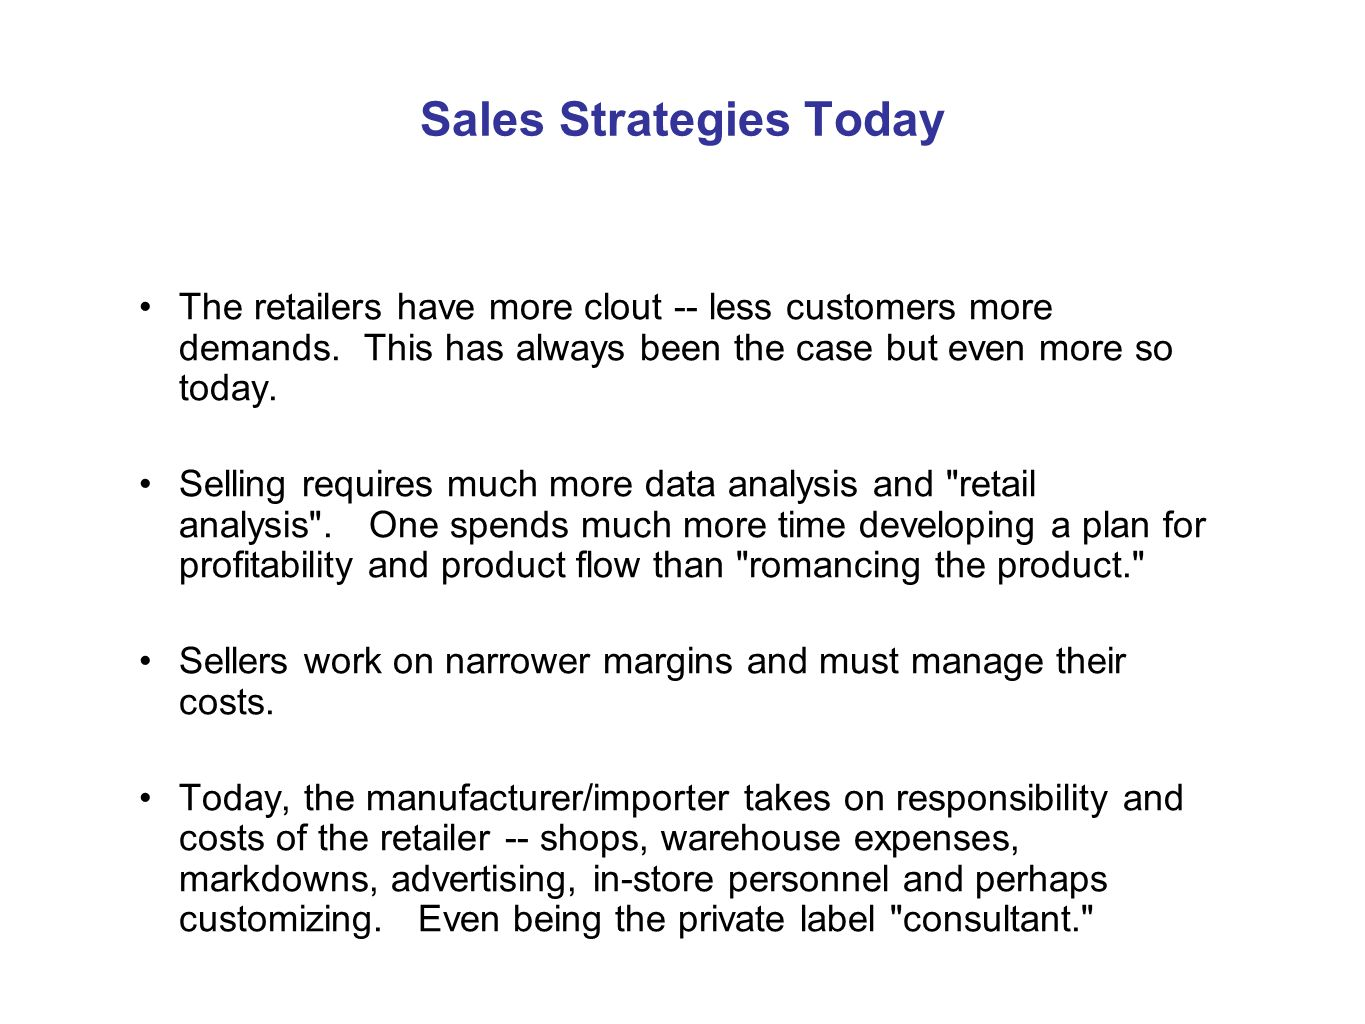 Sales Strategies Continued Retailers carry less inventory - harder to get placement and often you have to do more to get it e.g terms, vendor managed inventory, consignment or slotting fees.